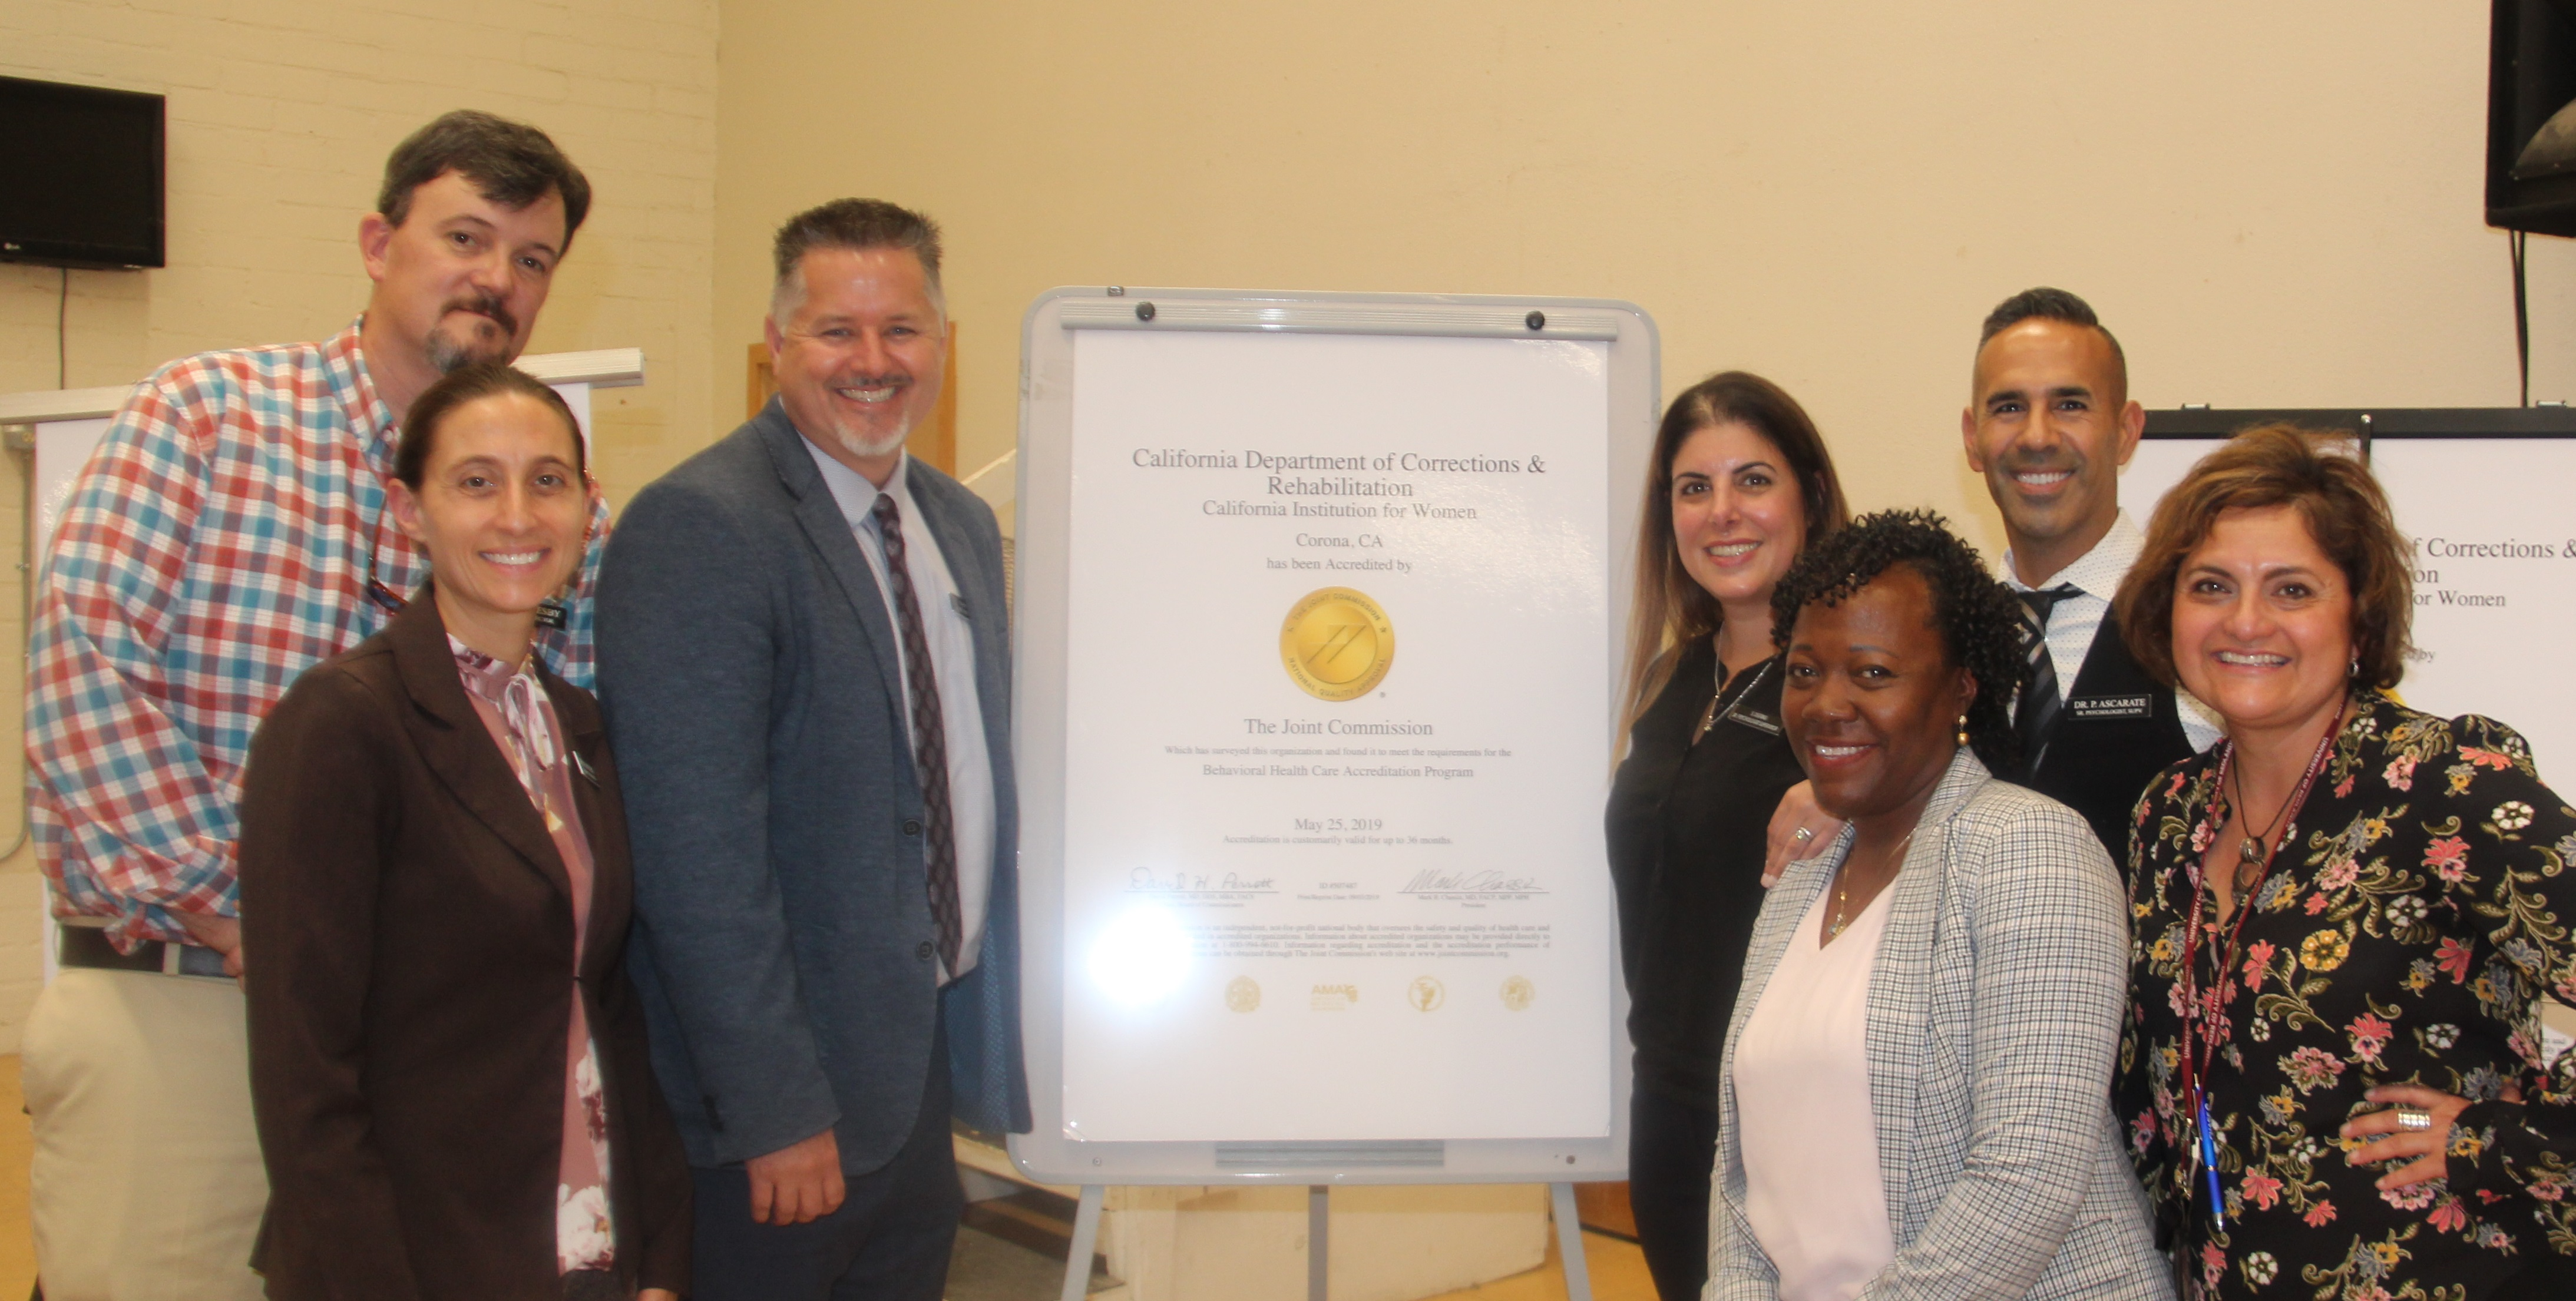 Seven people stand beside a poster recognizing the prison's health care achievement.